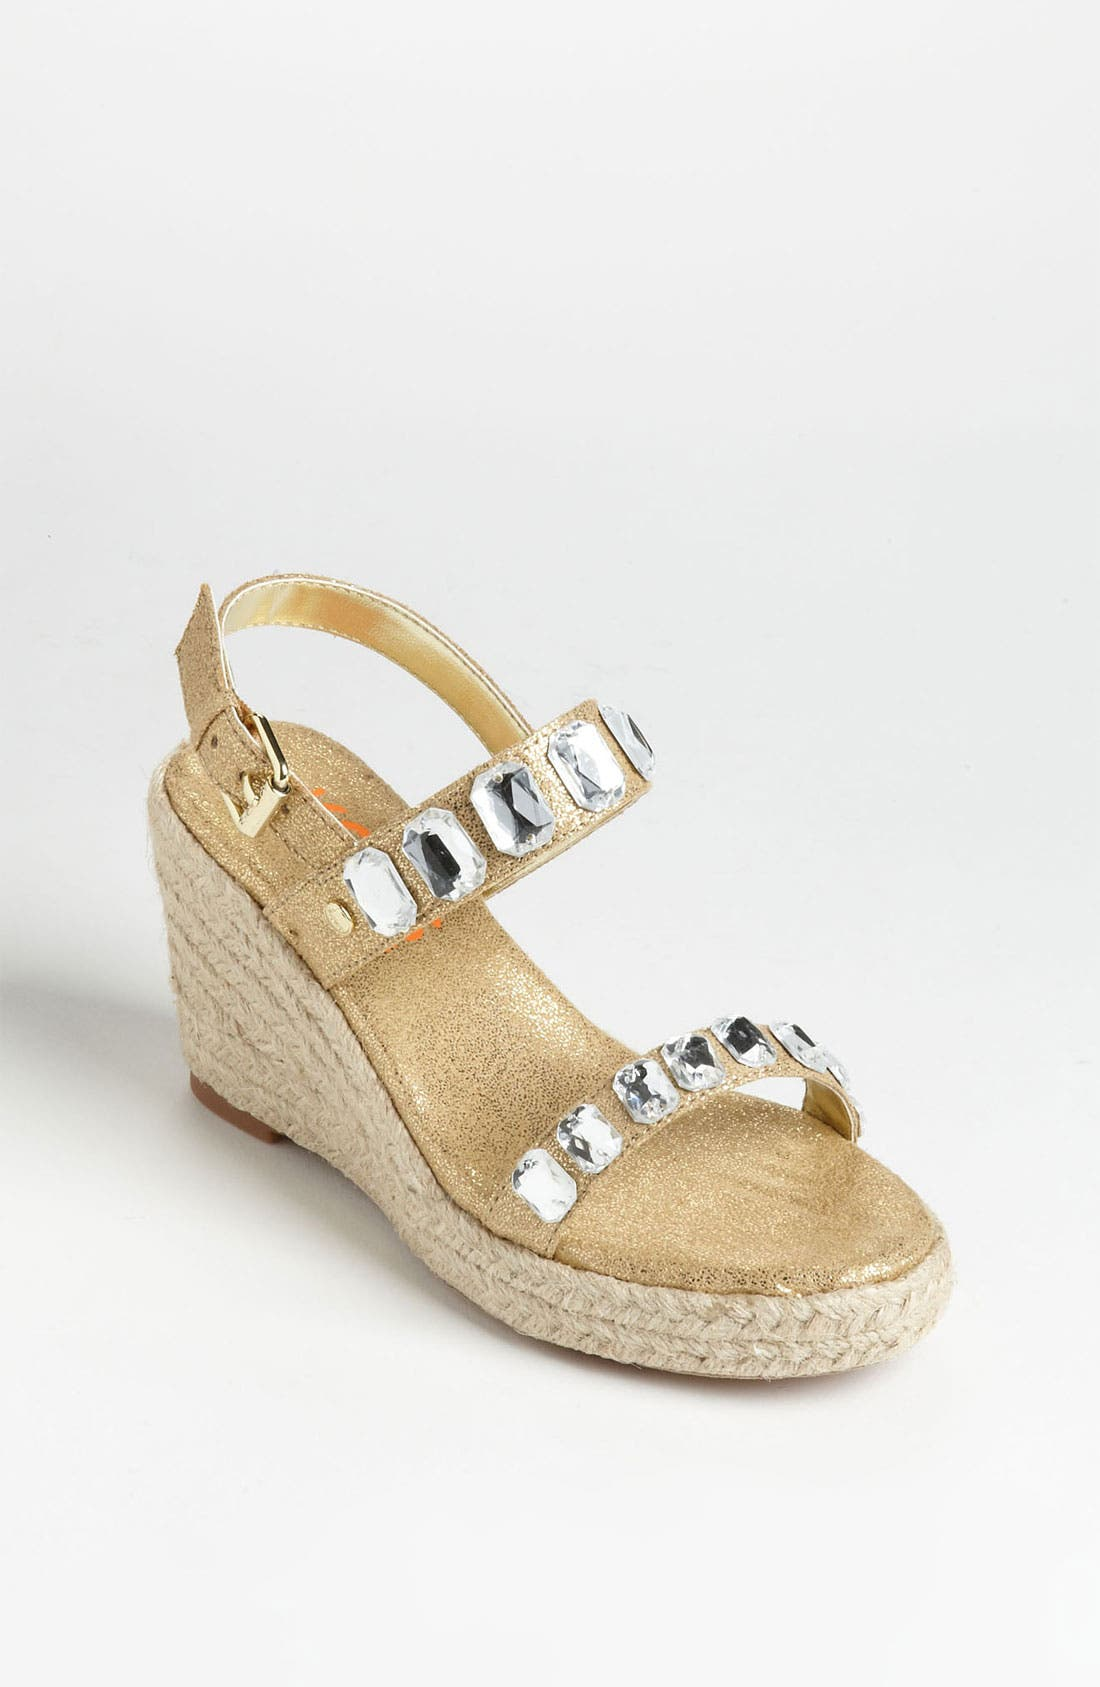 Main Image - KORS Michael Kors 'Atlantis' Sandal (Little Kid & Big Kid)